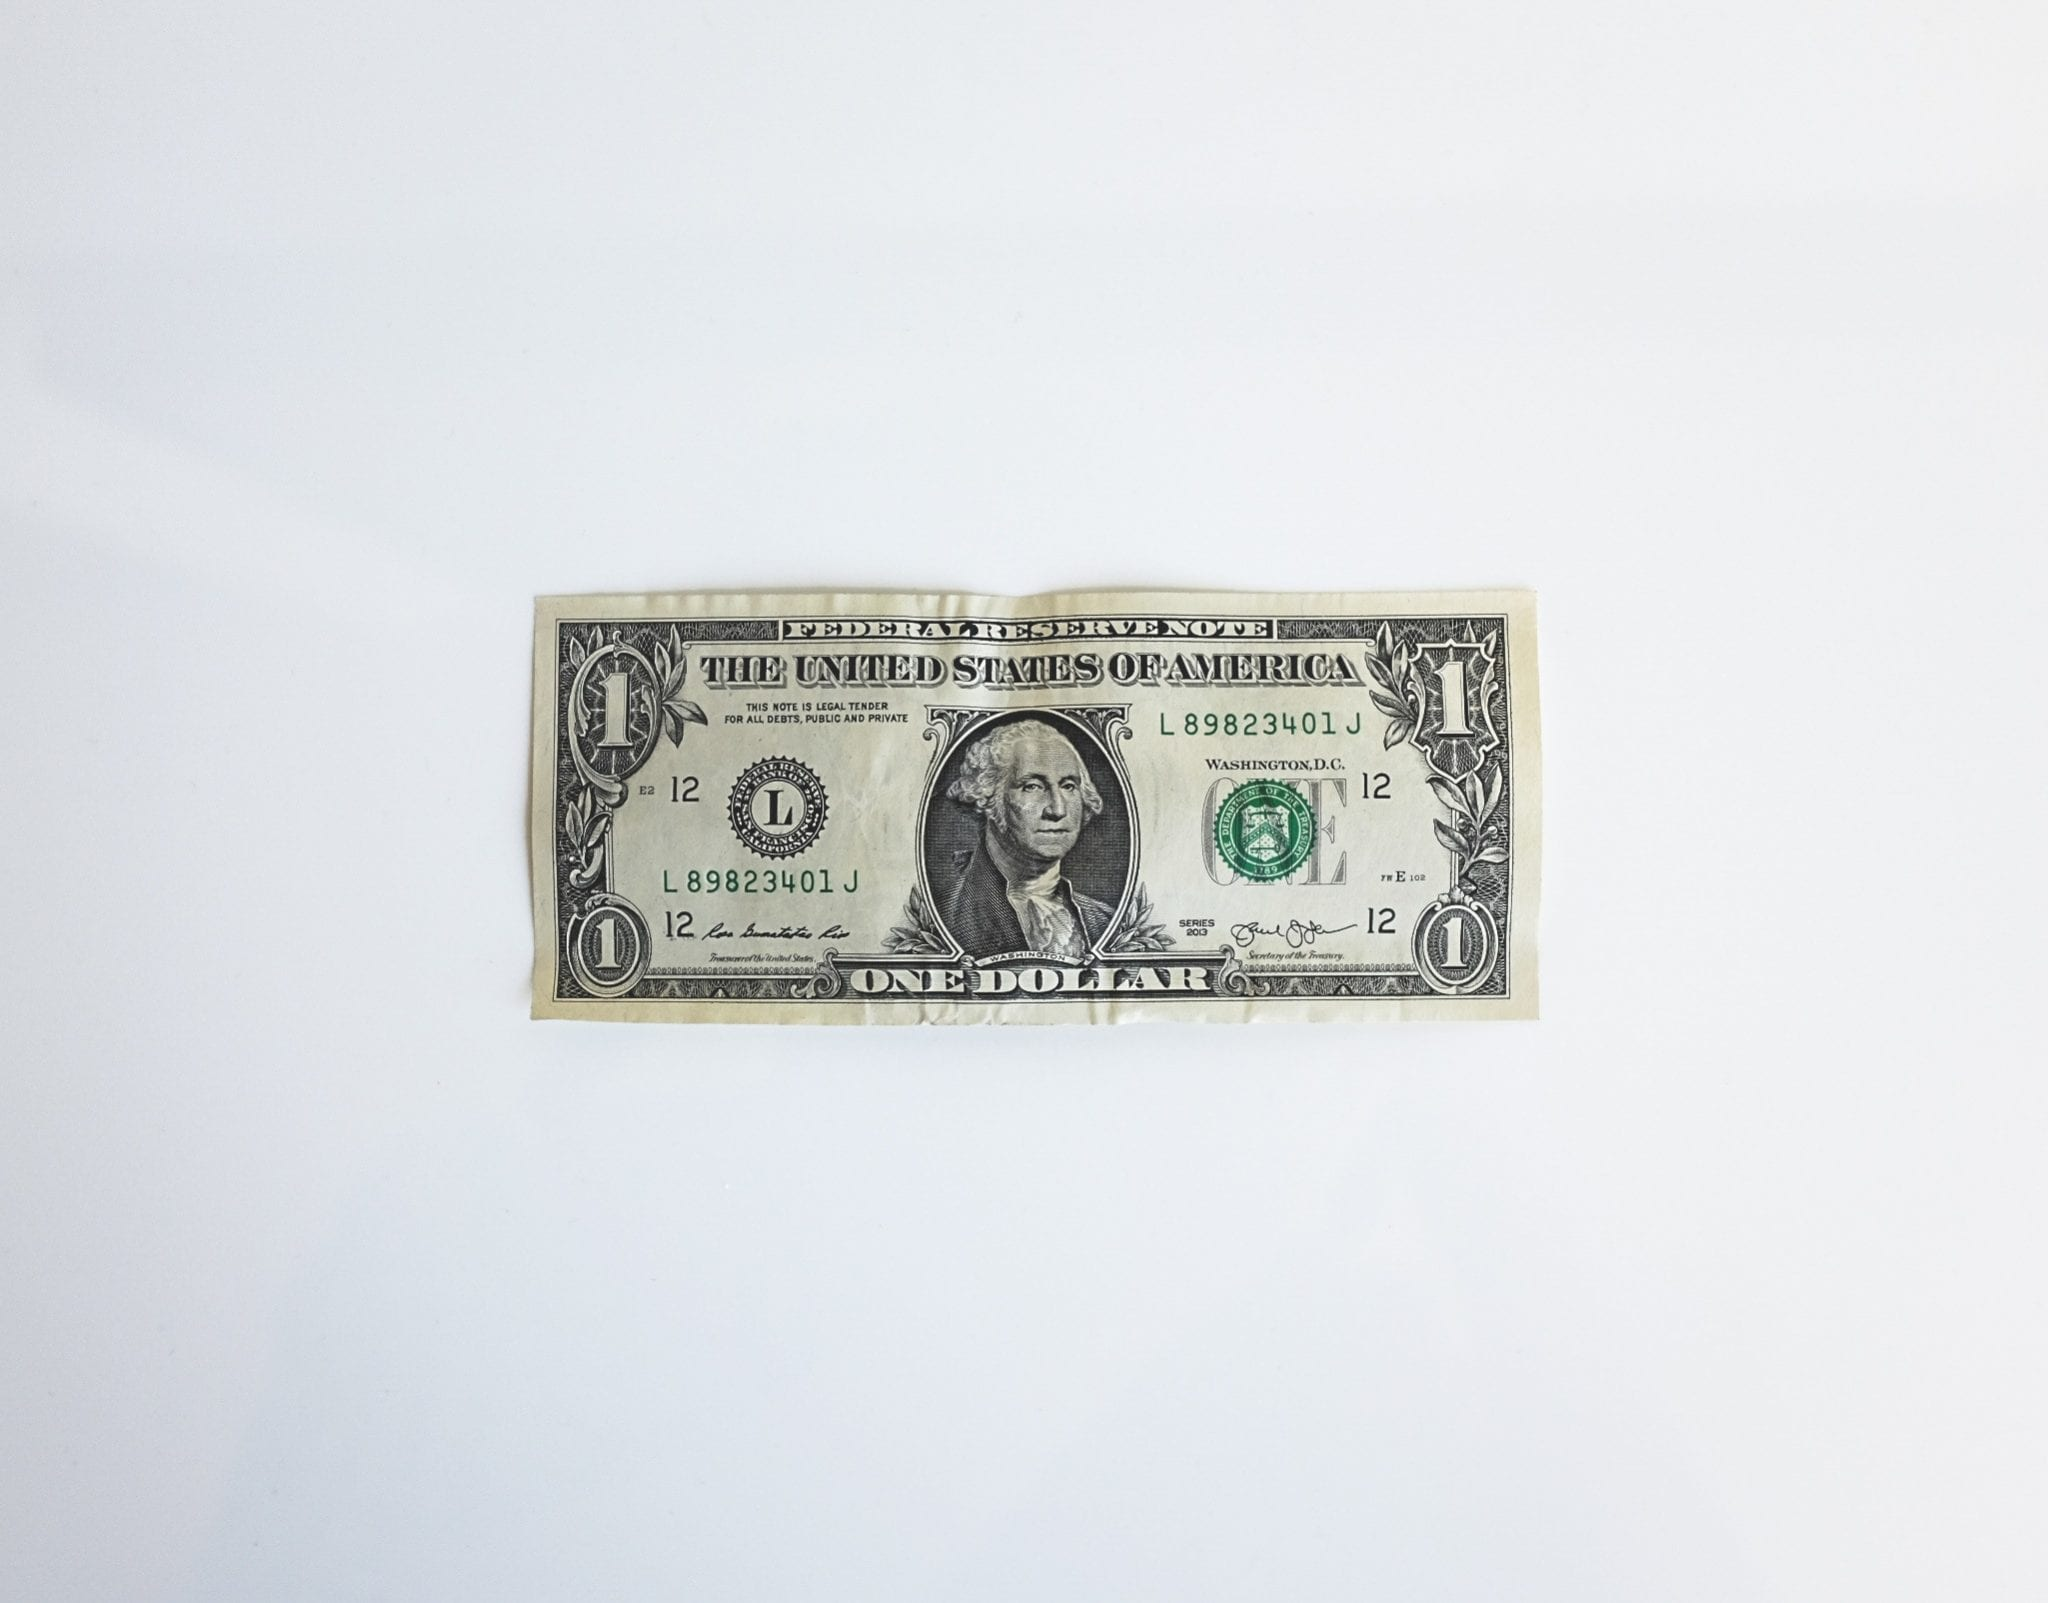 One US dollar bill on a white background to represent earnest money